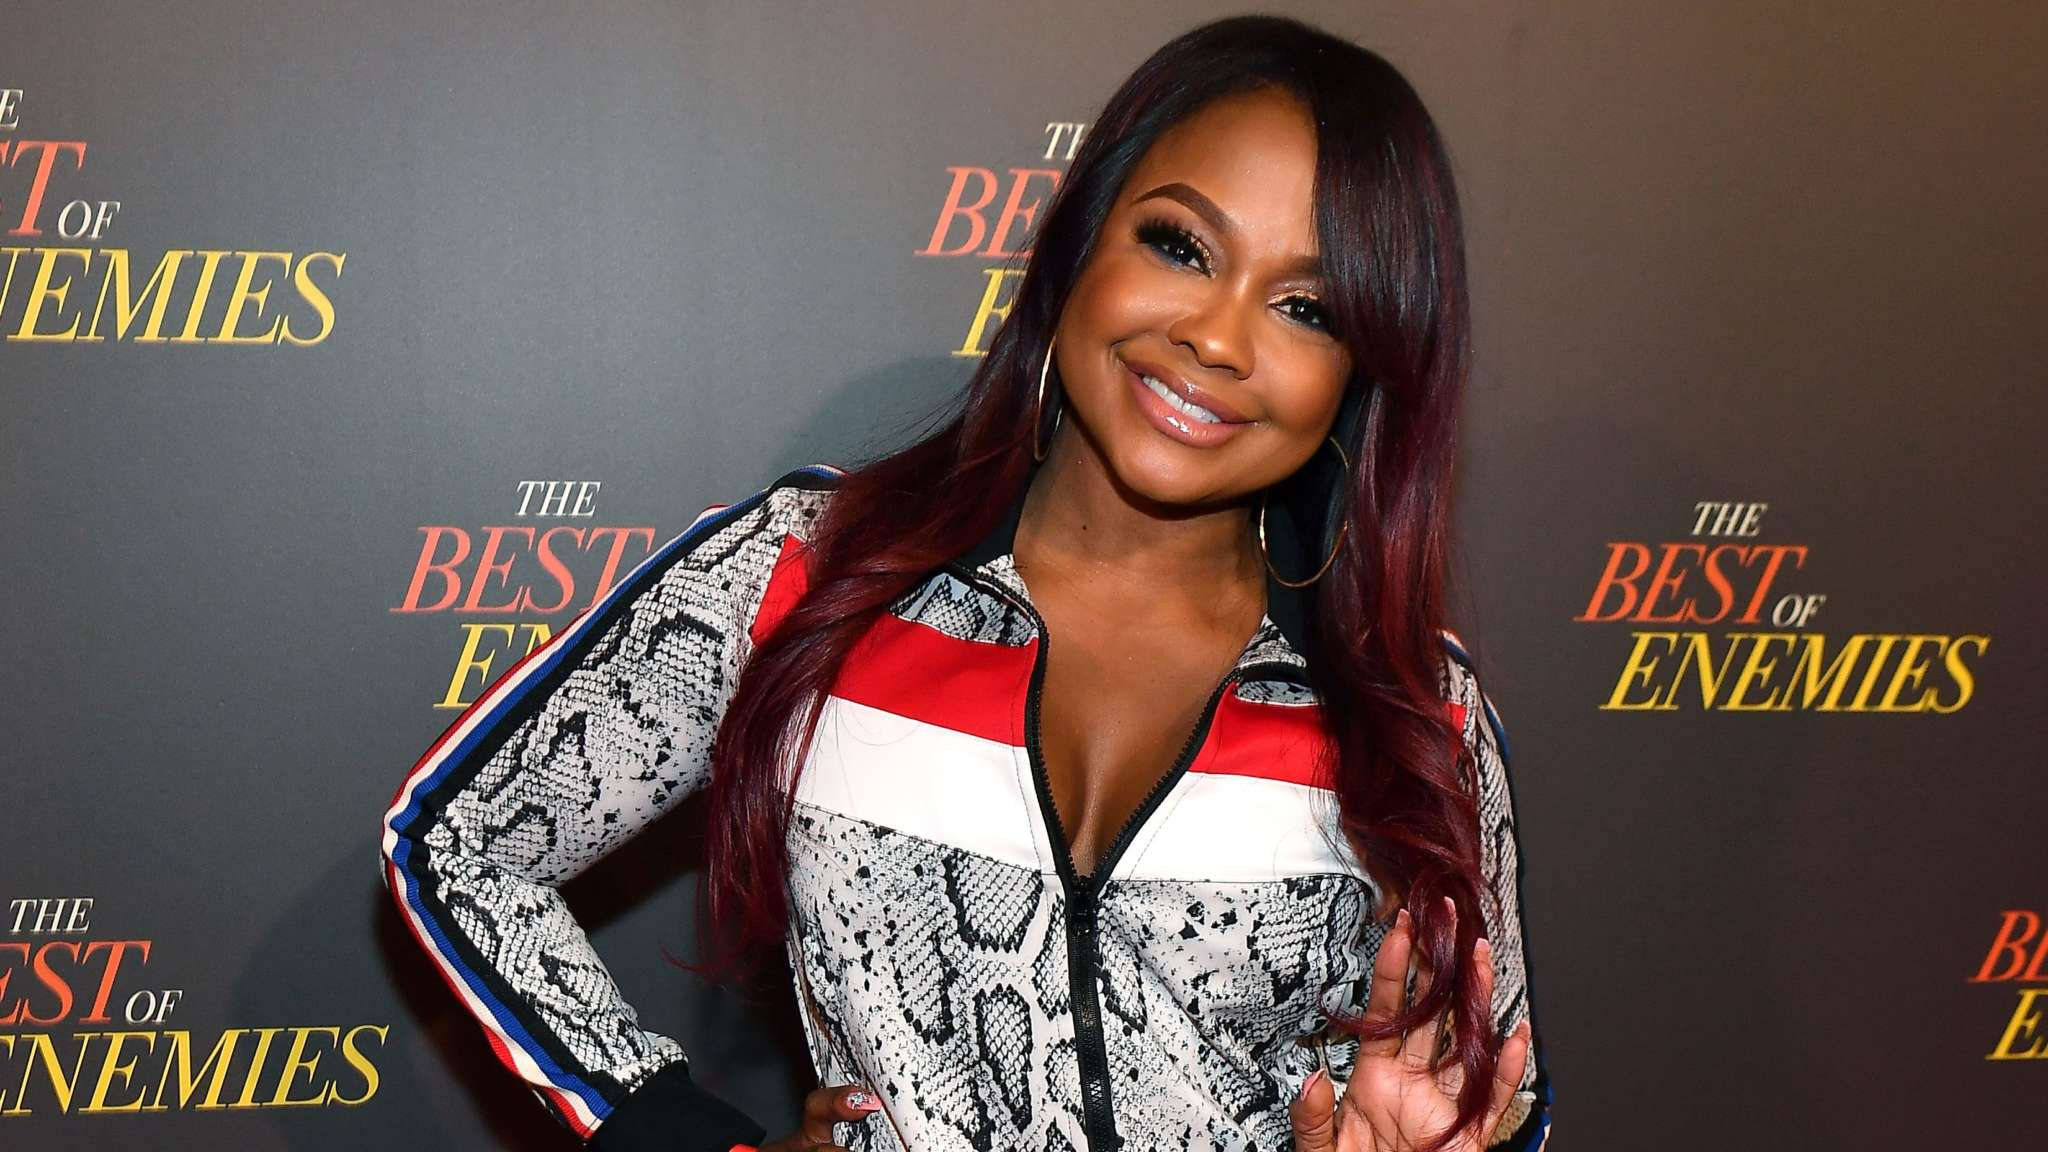 phaedra-parks-tells-fans-to-protect-their-souls-see-the-video-she-shared